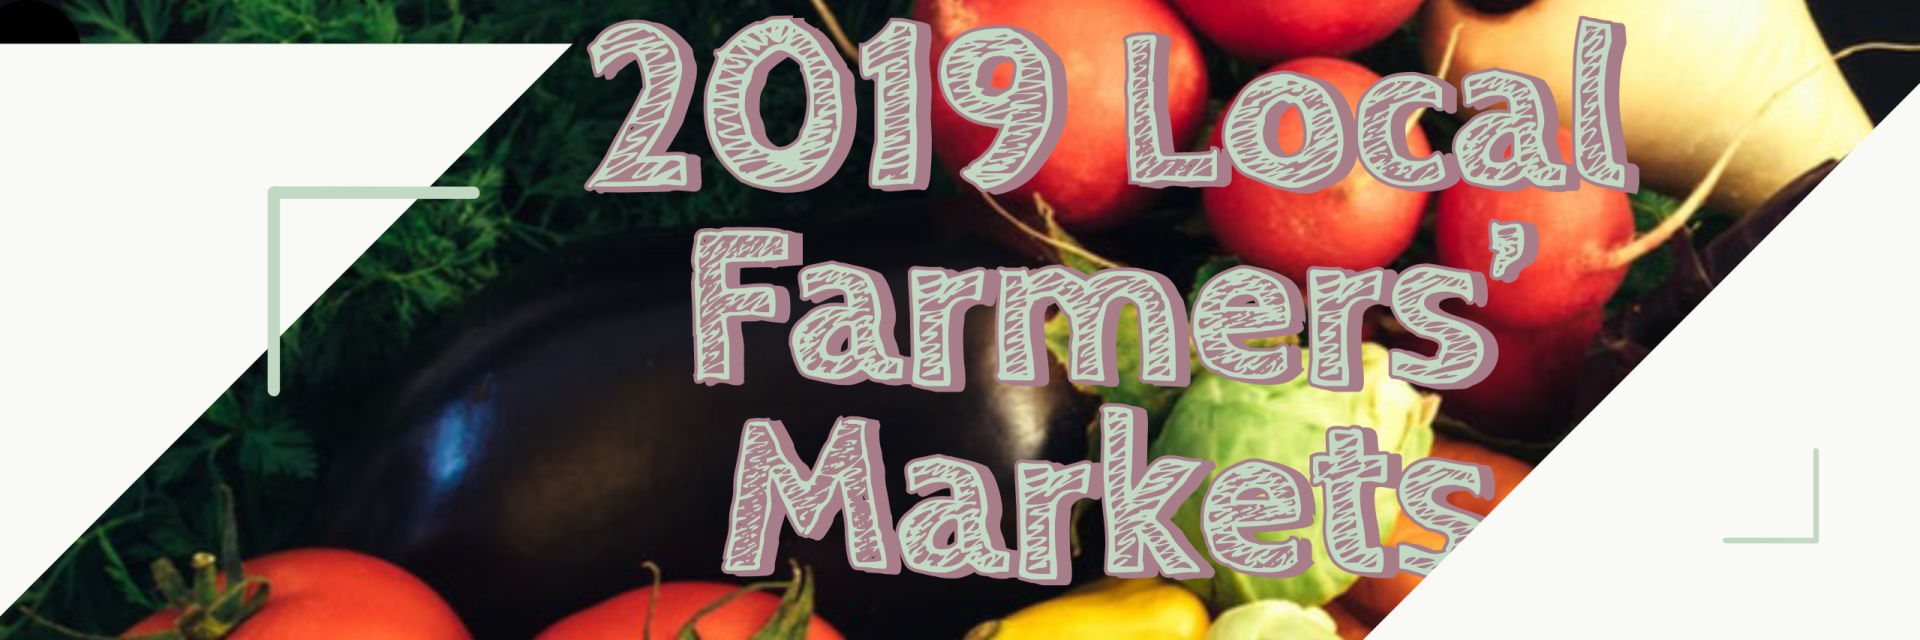 2019 Local Farmers' Markets